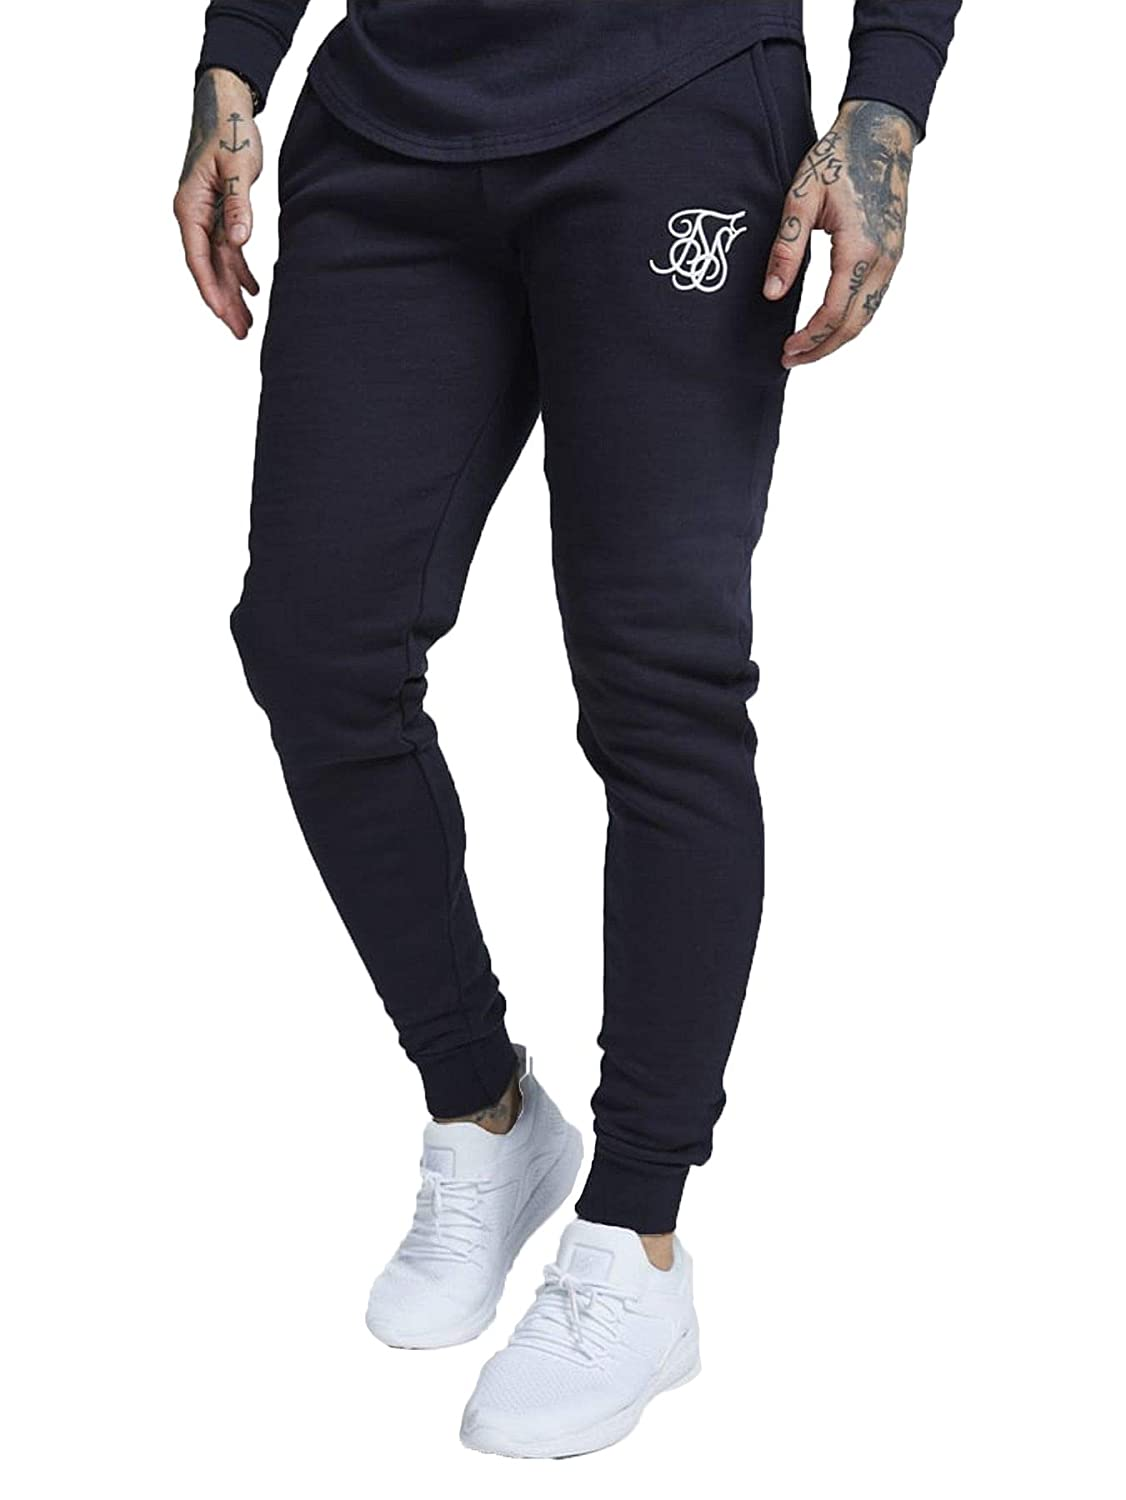 SIK Silk Muscle Fit Jogger Black SS-13230